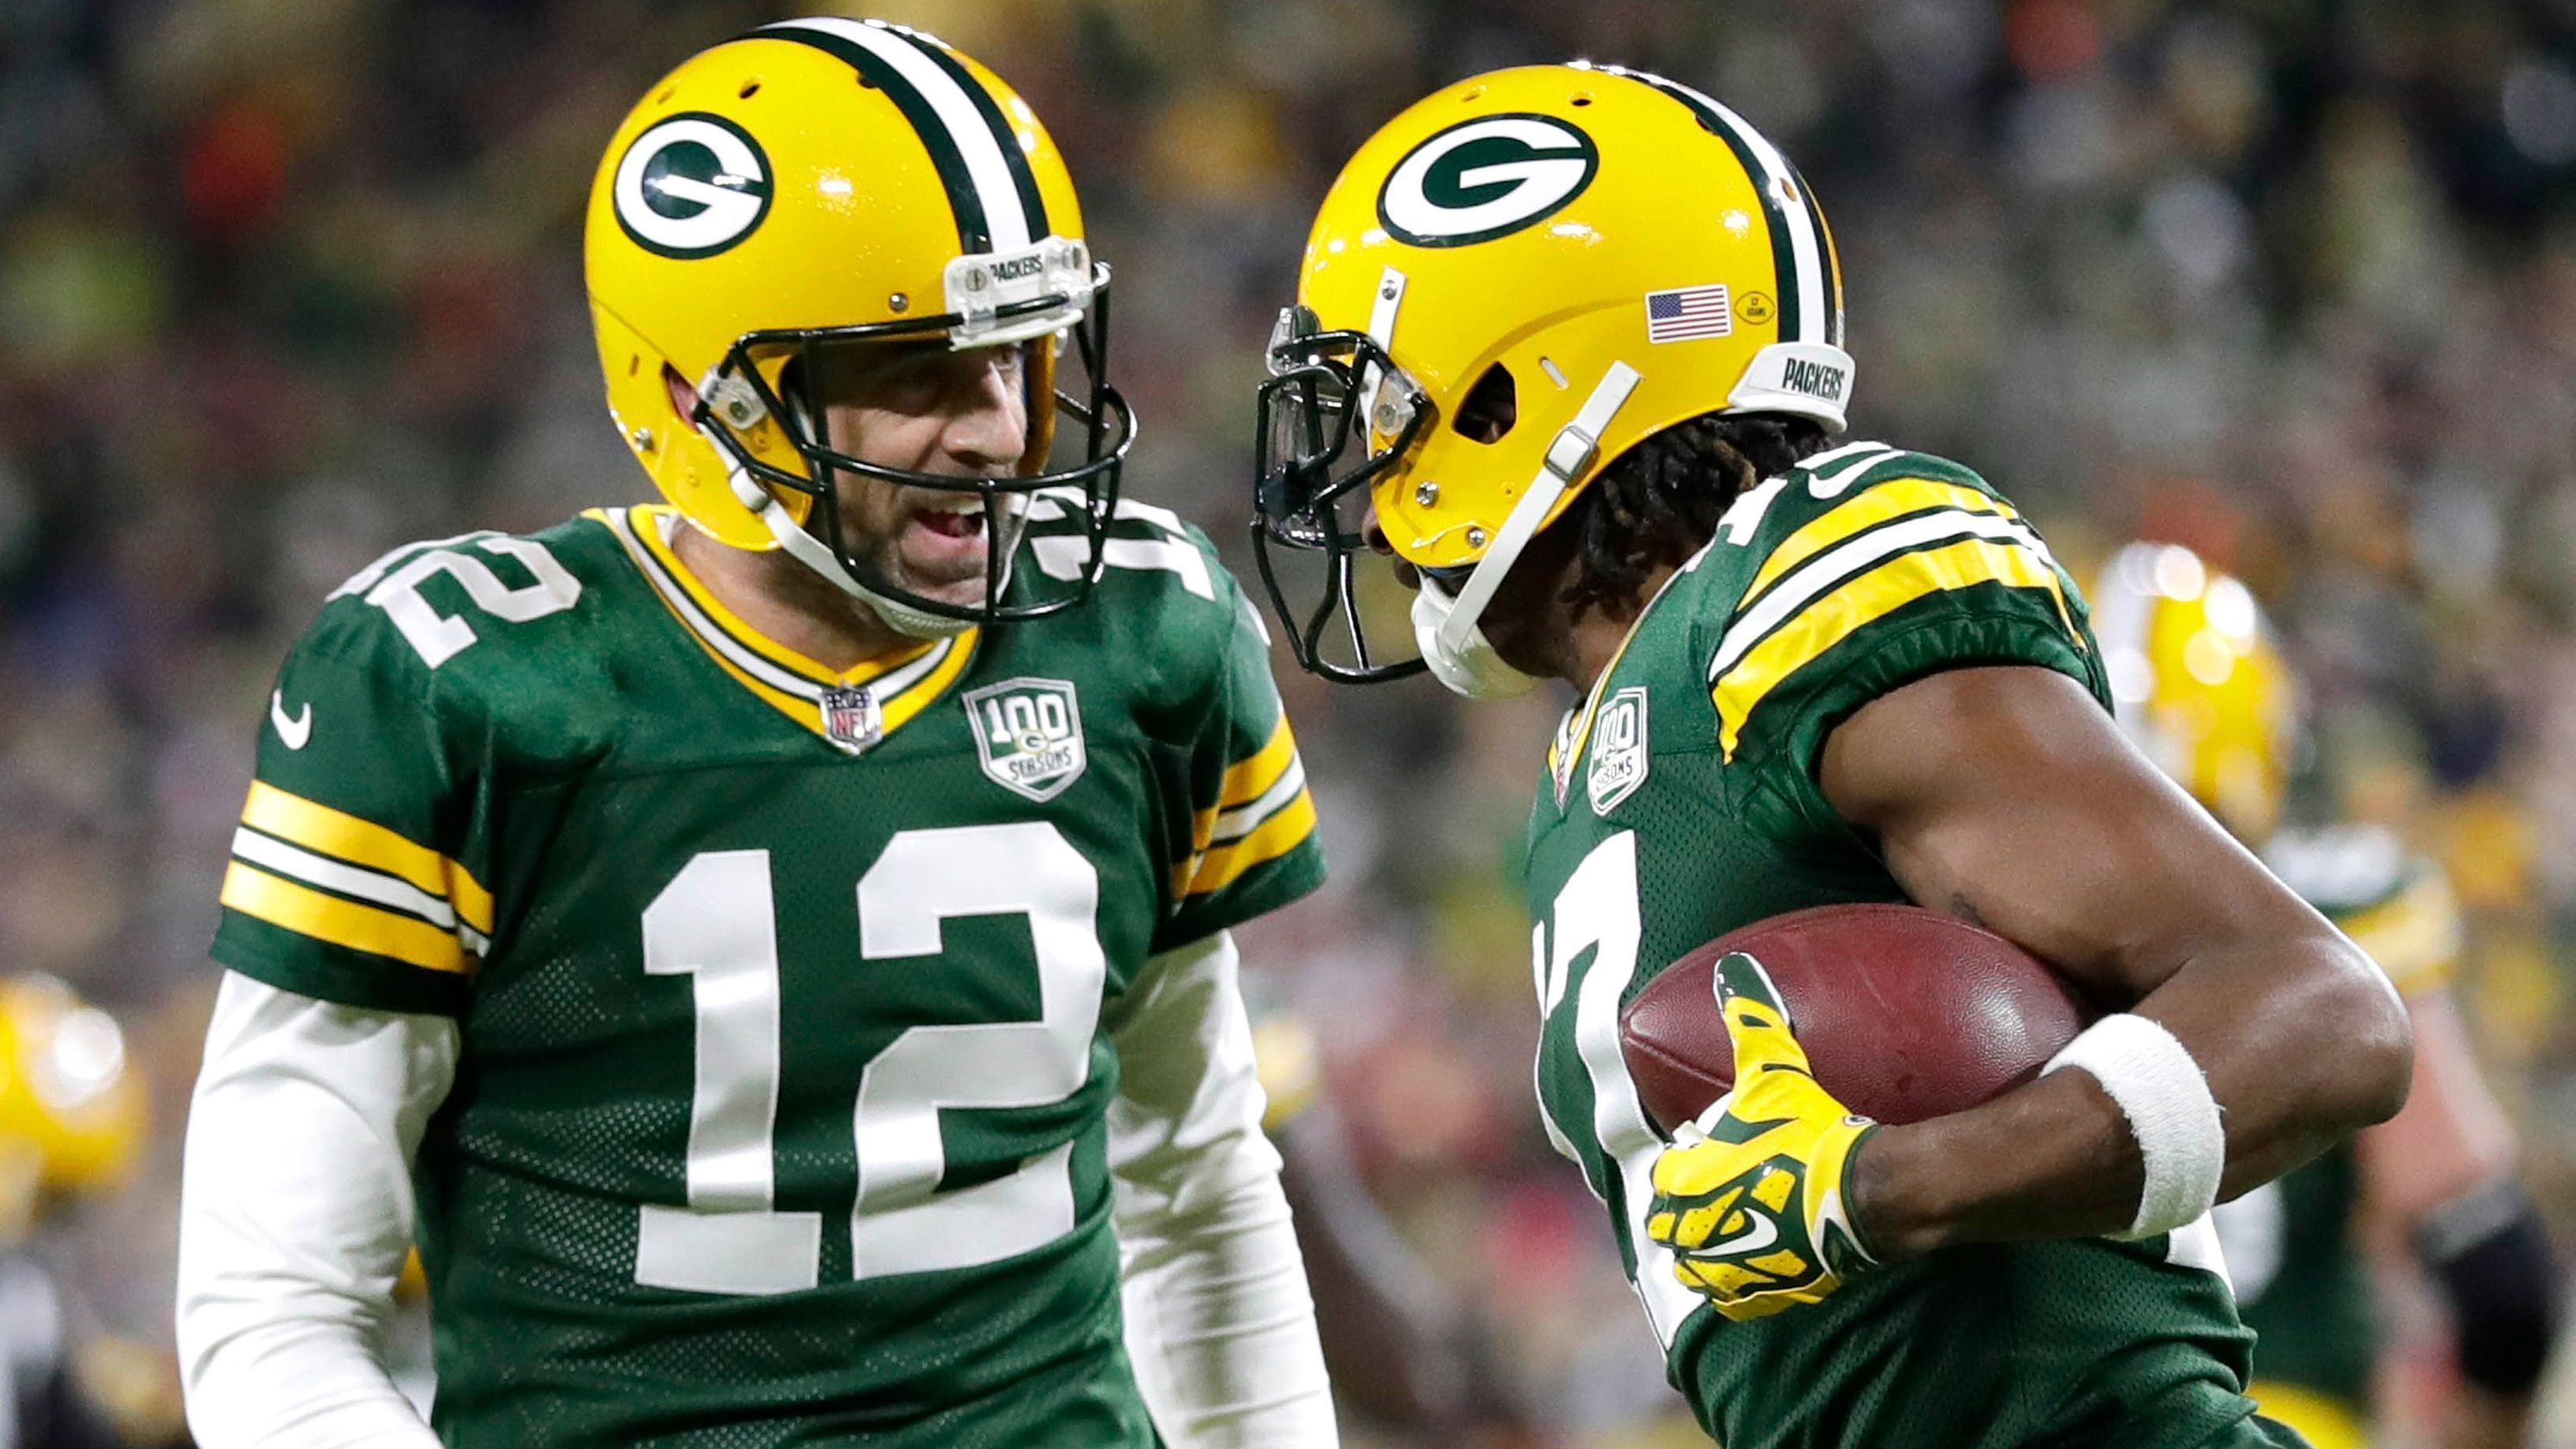 NFL Predictions WinLoss Ratio Odds for Packers, Bears